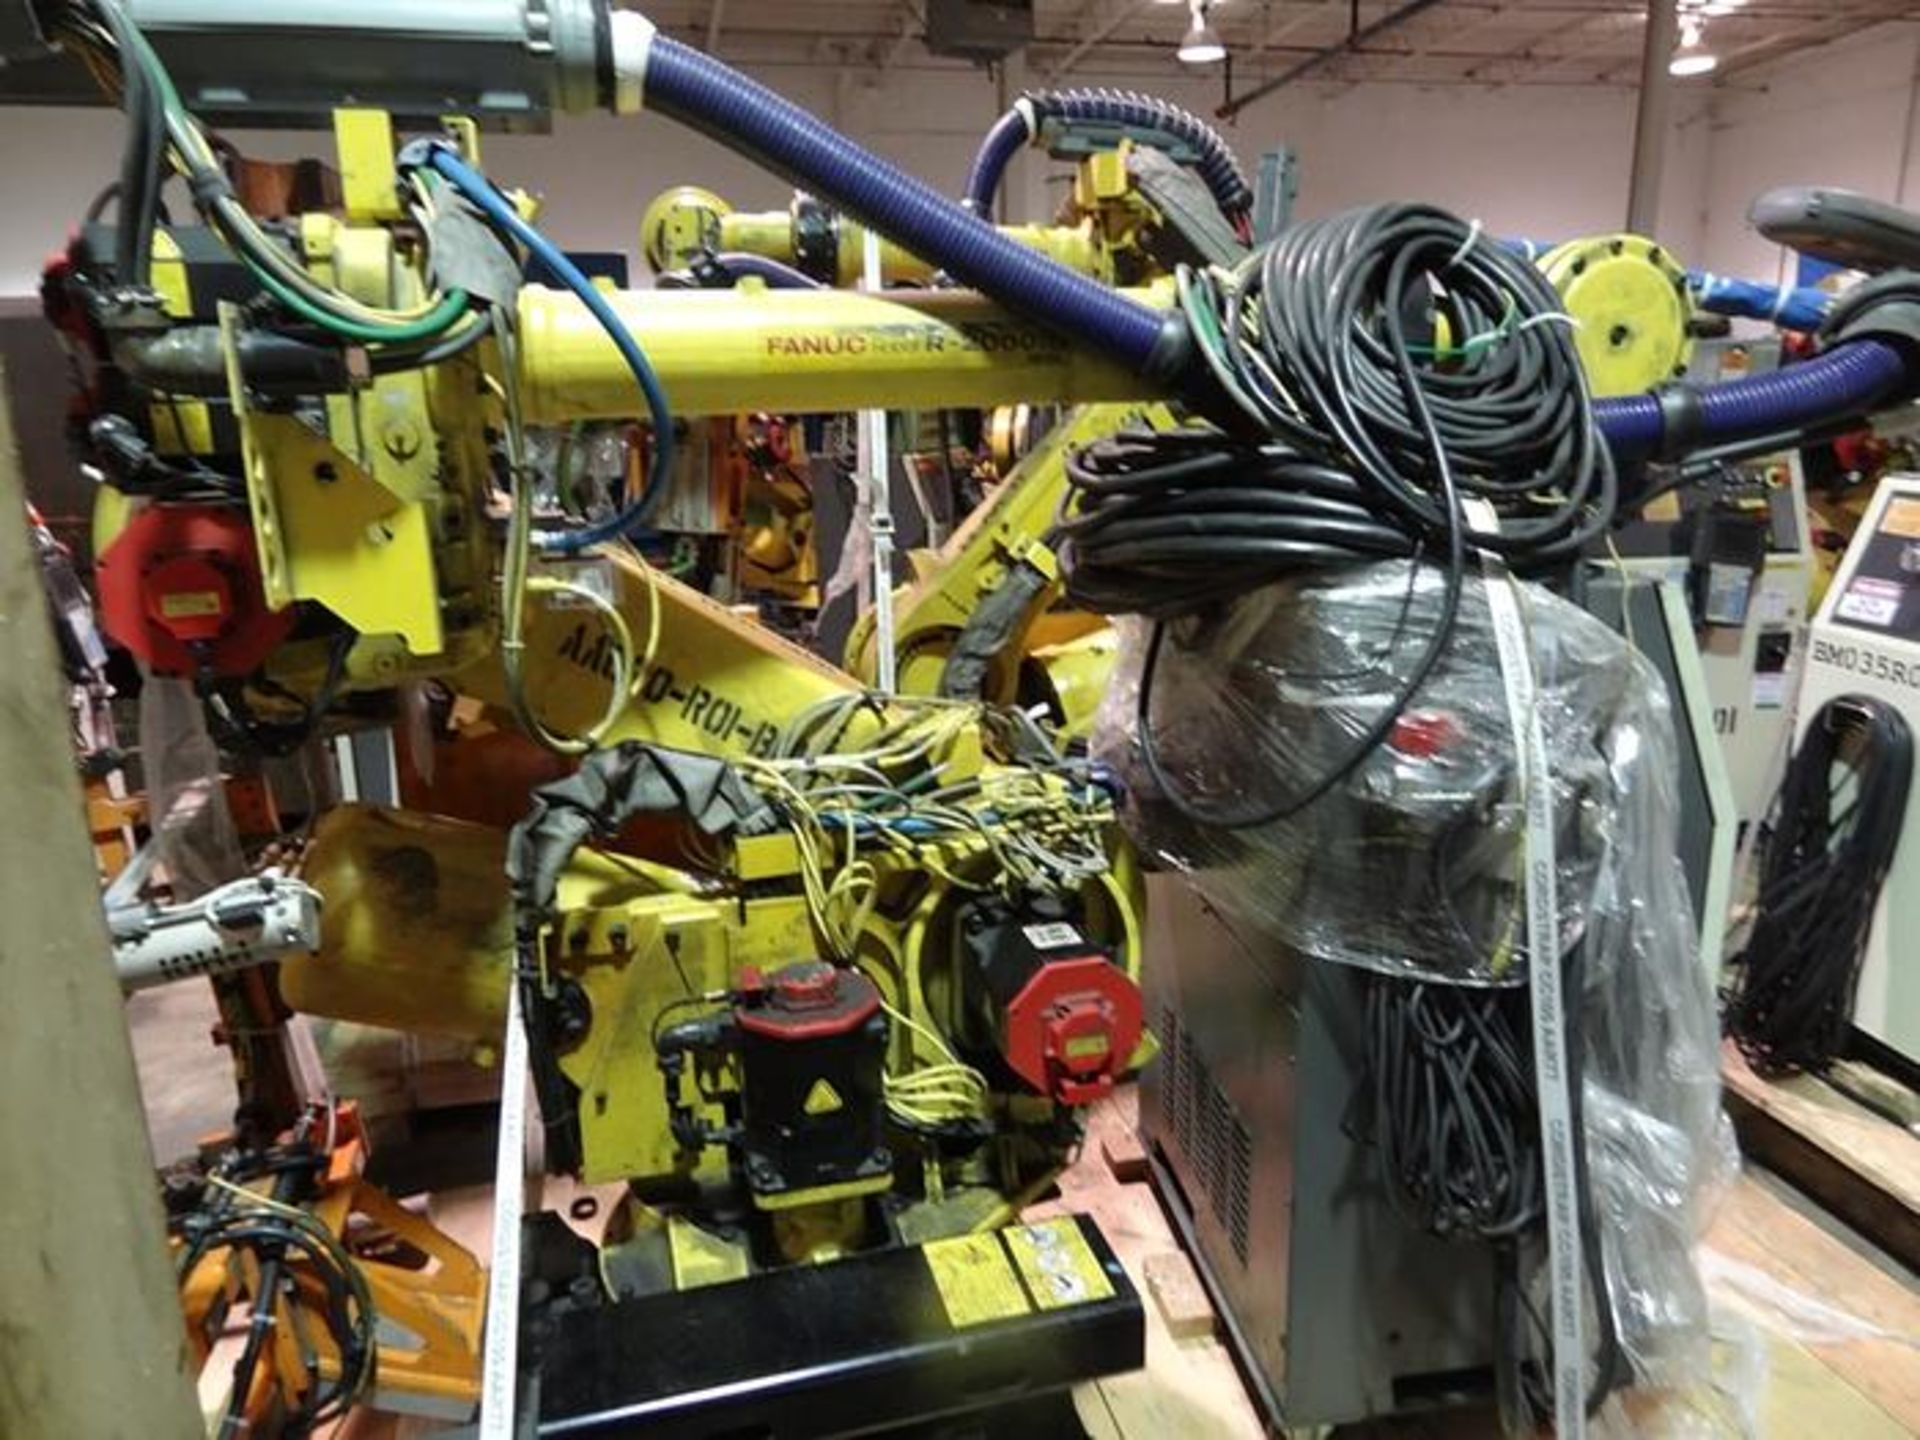 FANUC ROBOT R2000iB/185L WITH R30iA CONTROLLER, TEACH & CABLES, YEAR 2013, SN 132164 - Image 2 of 6